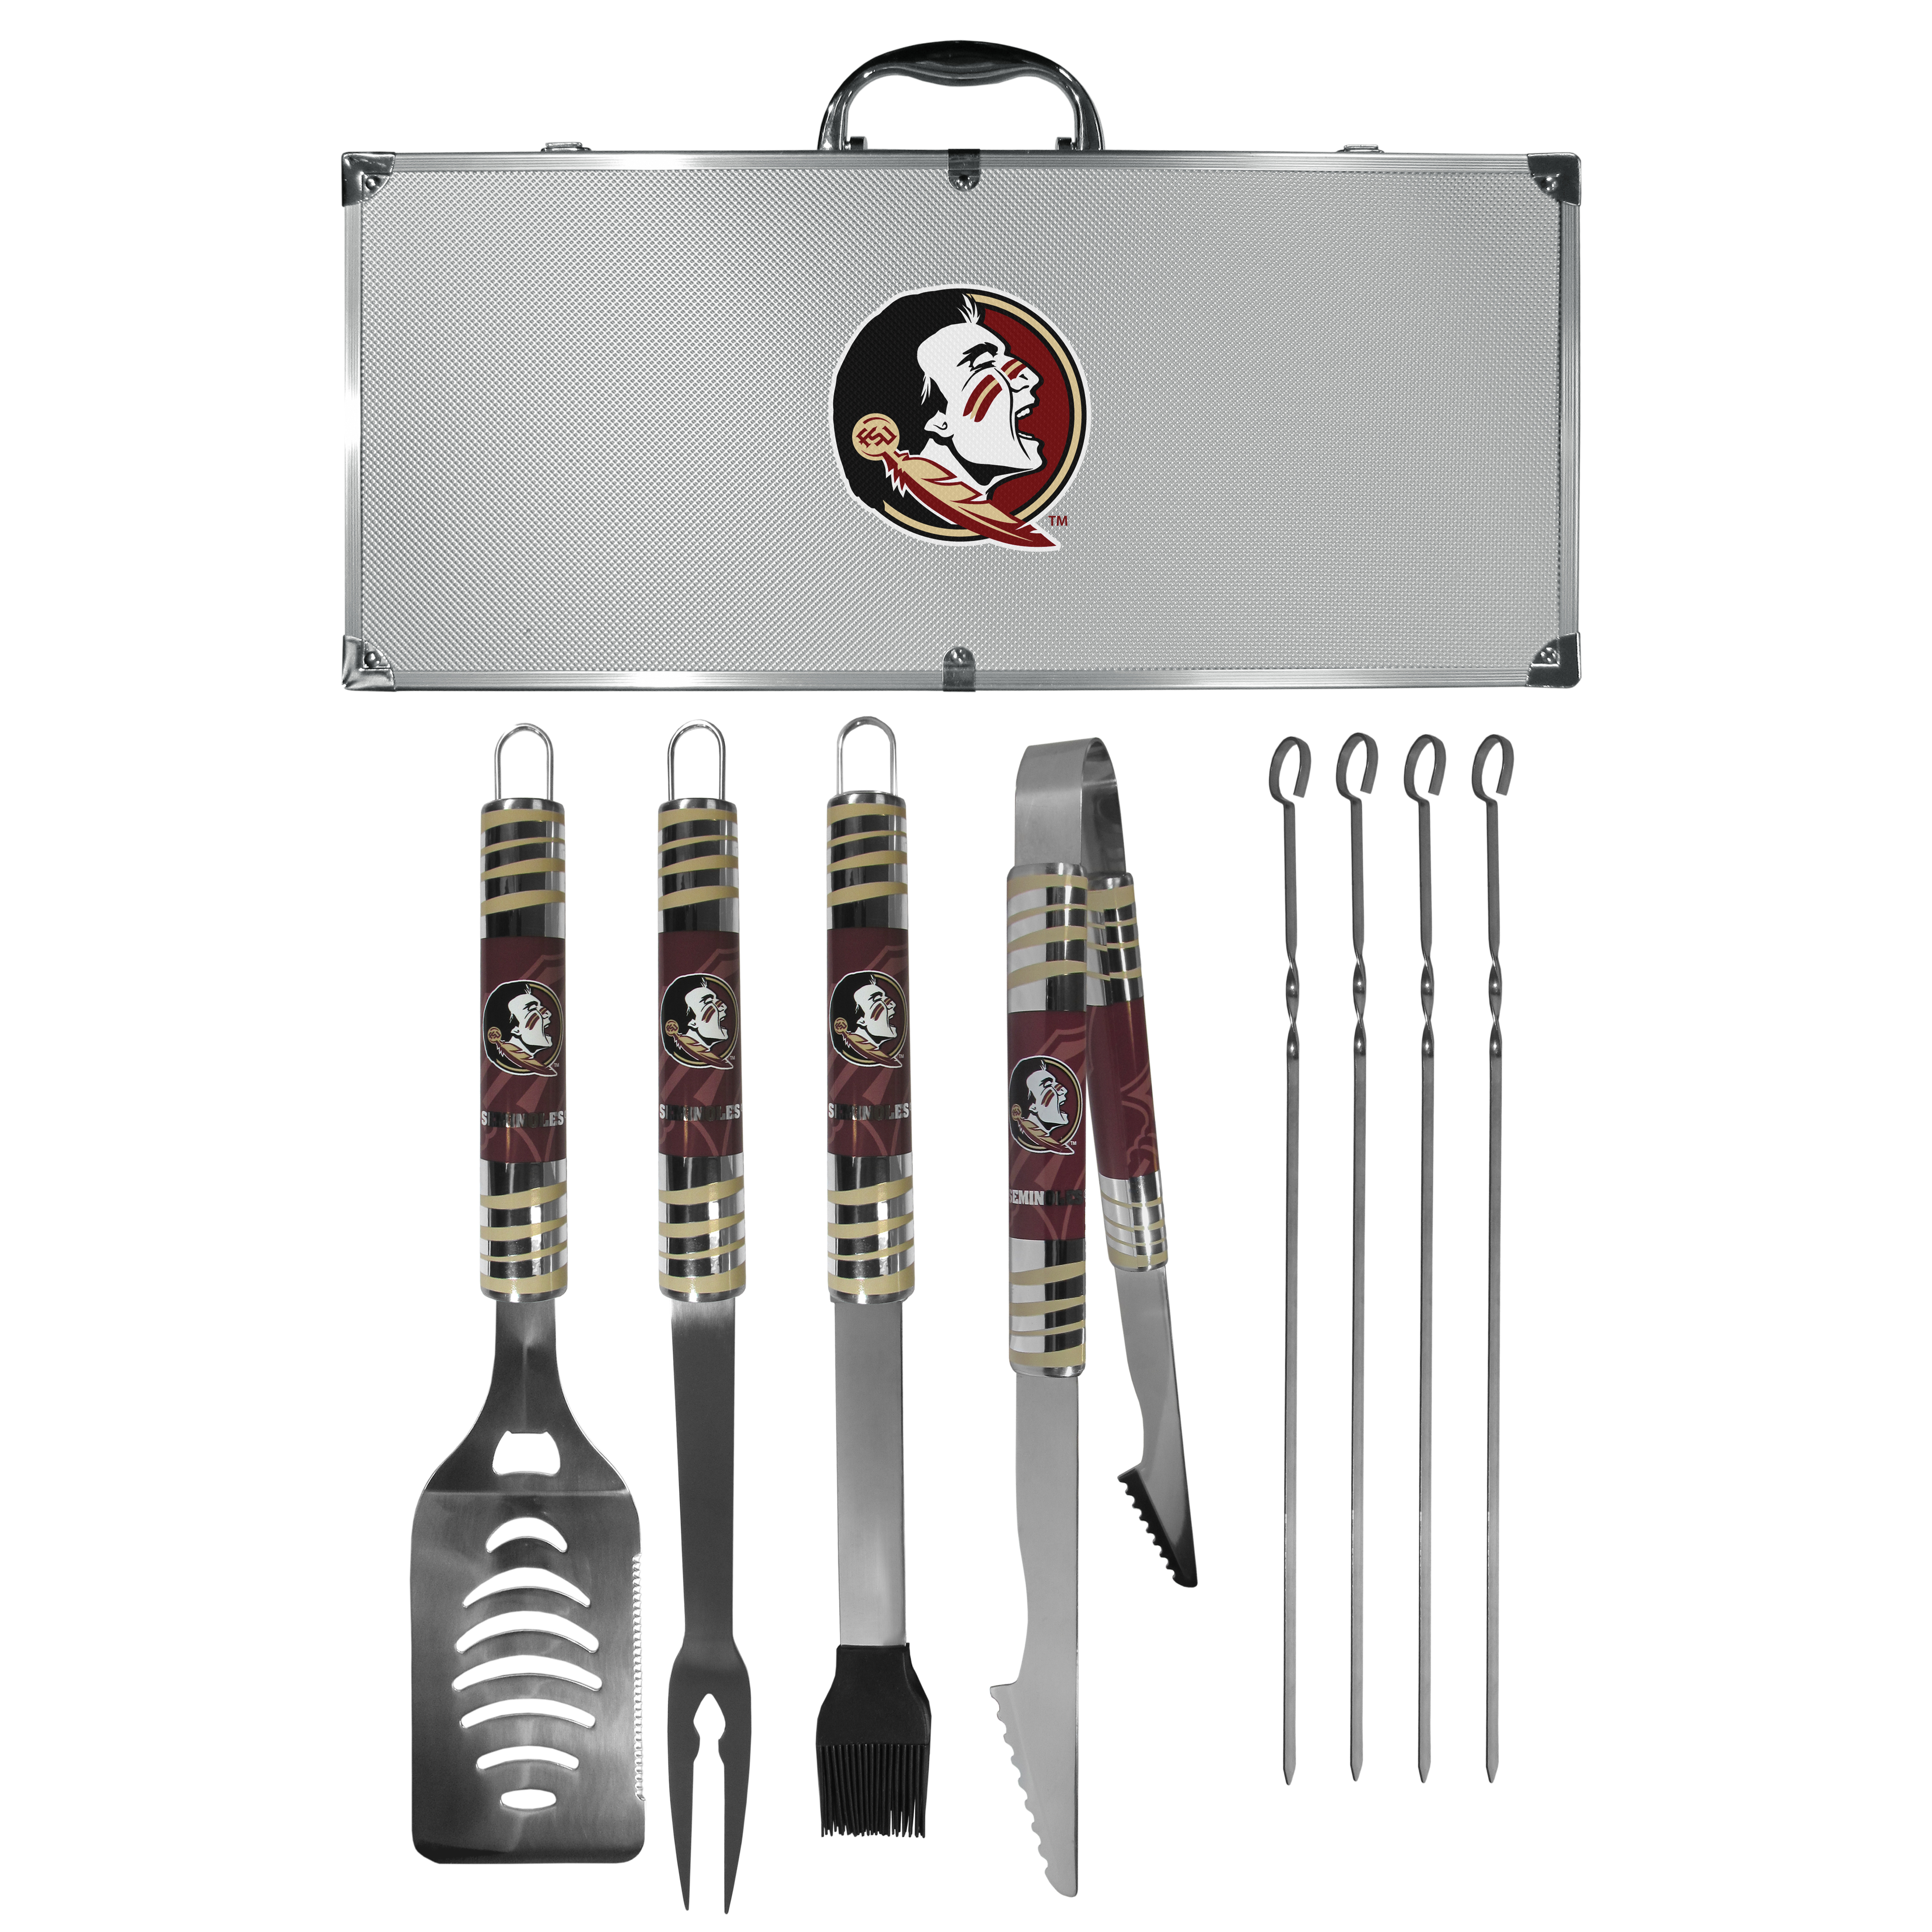 Florida St. Seminoles 8 pc Tailgater BBQ Set - This is the ultimate Florida St. Seminoles tailgate accessory! The high quality, 420 grade stainless steel tools are durable and well-made enough to make even the pickiest grill master smile. This complete grill accessory kit includes; 4 skewers, spatula with bottle opener and serrated knife edge, basting brush, tongs and a fork. The 18 inch metal carrying case is perfect for great outdoor use making grilling an ease while camping, tailgating or while having a game day party on your patio. The tools are 17 inches long and feature vivid team graphics. The metal case features a large team emblem with exceptional detail. This high-end men's gift is sure to be a hit as a present on Father's Day or Christmas.